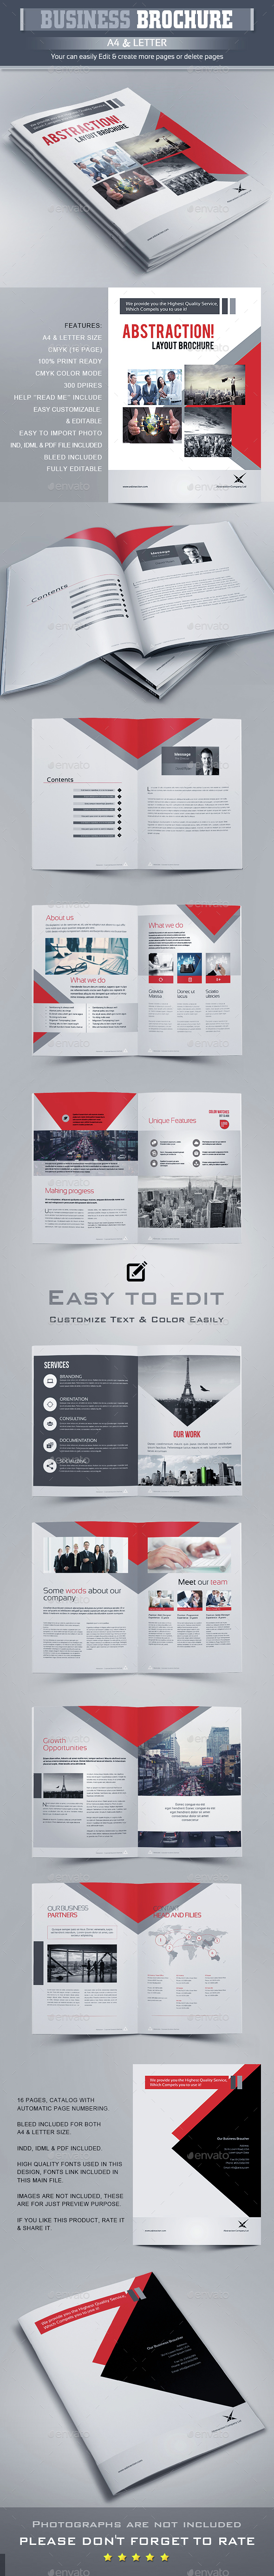 Brochure Template InDesign INDD | Diseño Editorial || Editorial ...